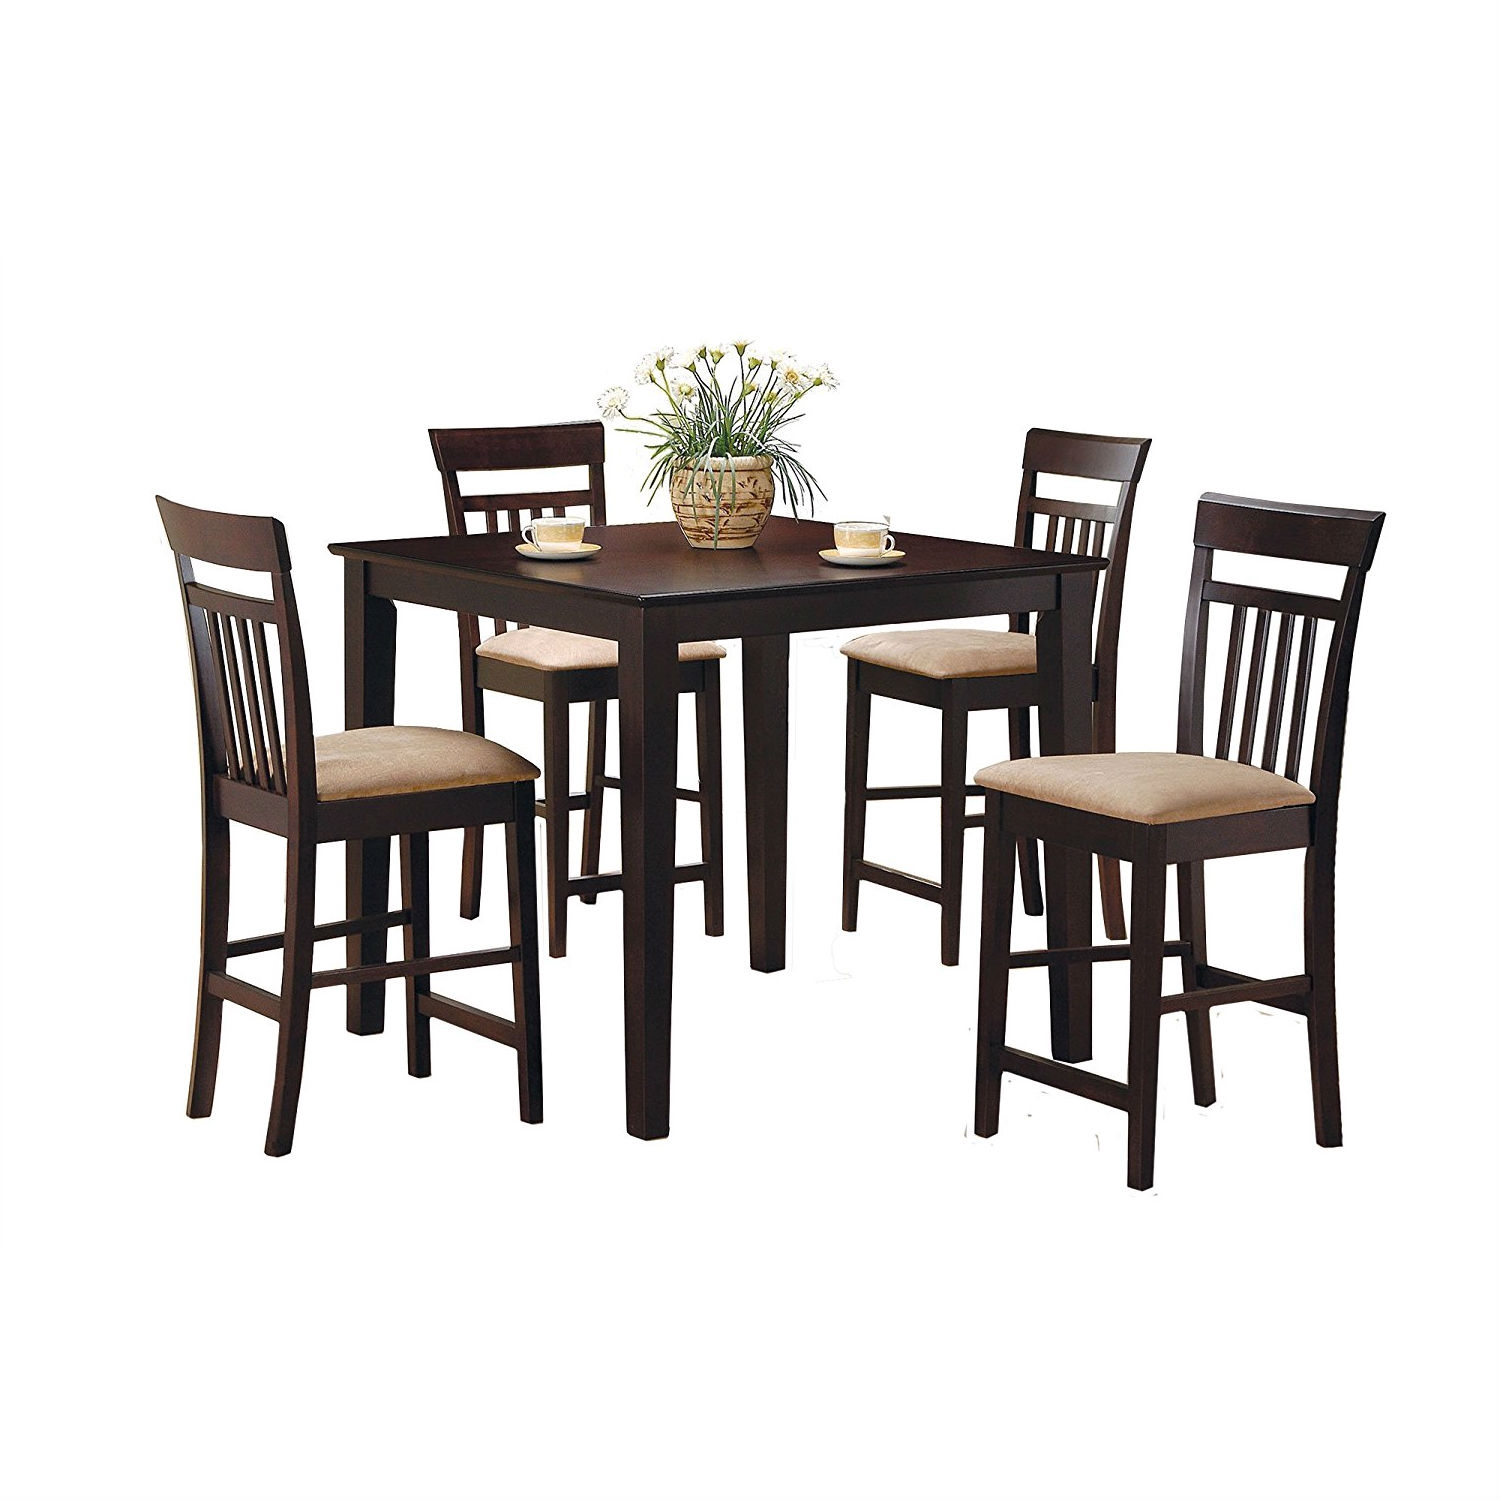 Marvelous Dark Brown 5 Piece Dining Room Set With 4 Counter Height Barstools Download Free Architecture Designs Scobabritishbridgeorg